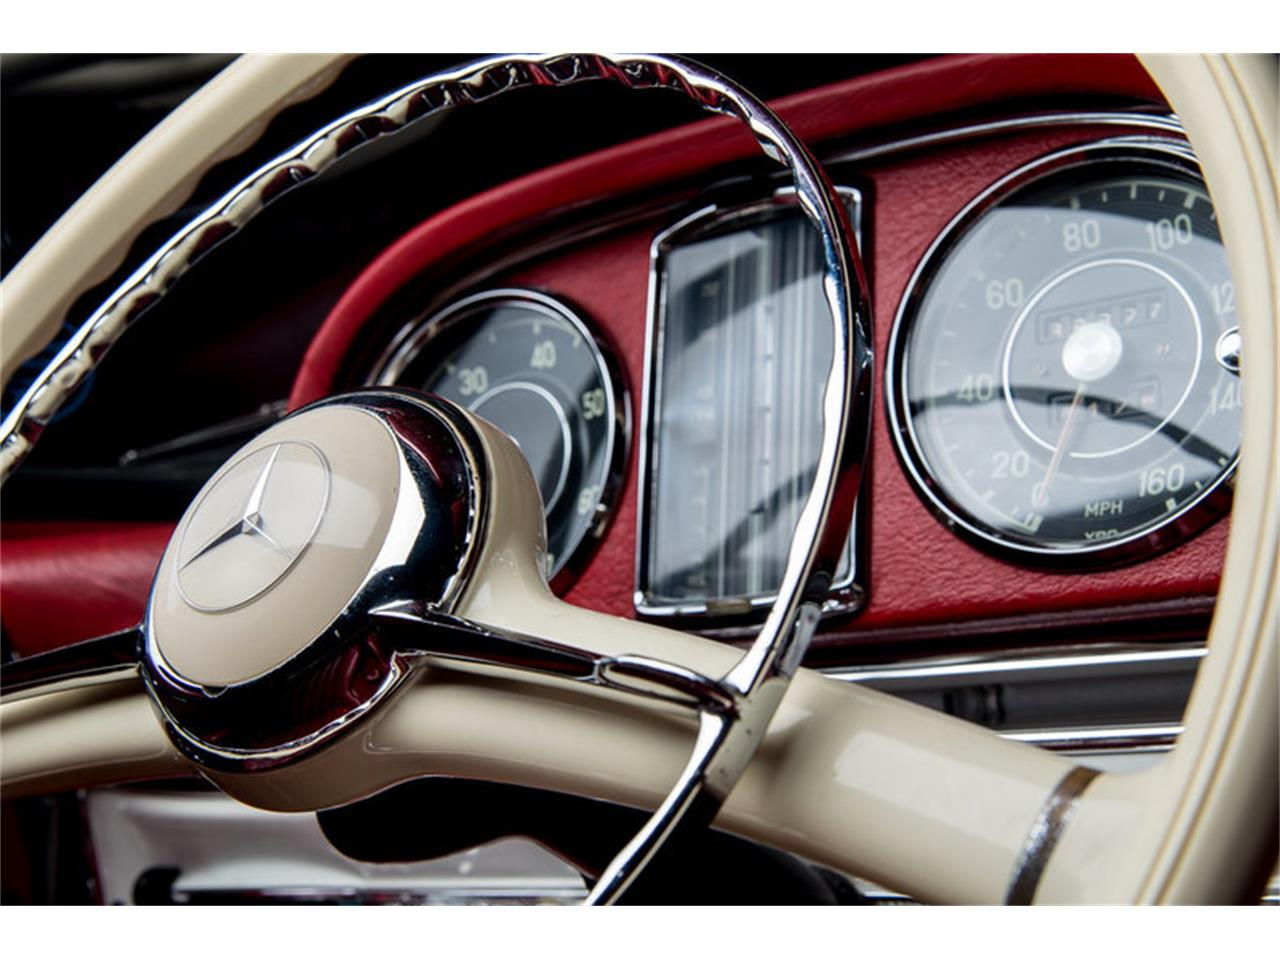 Large Picture of 1963 Mercedes-Benz 300SL Roadster located in Scotts Valley California Auction Vehicle - EFPZ